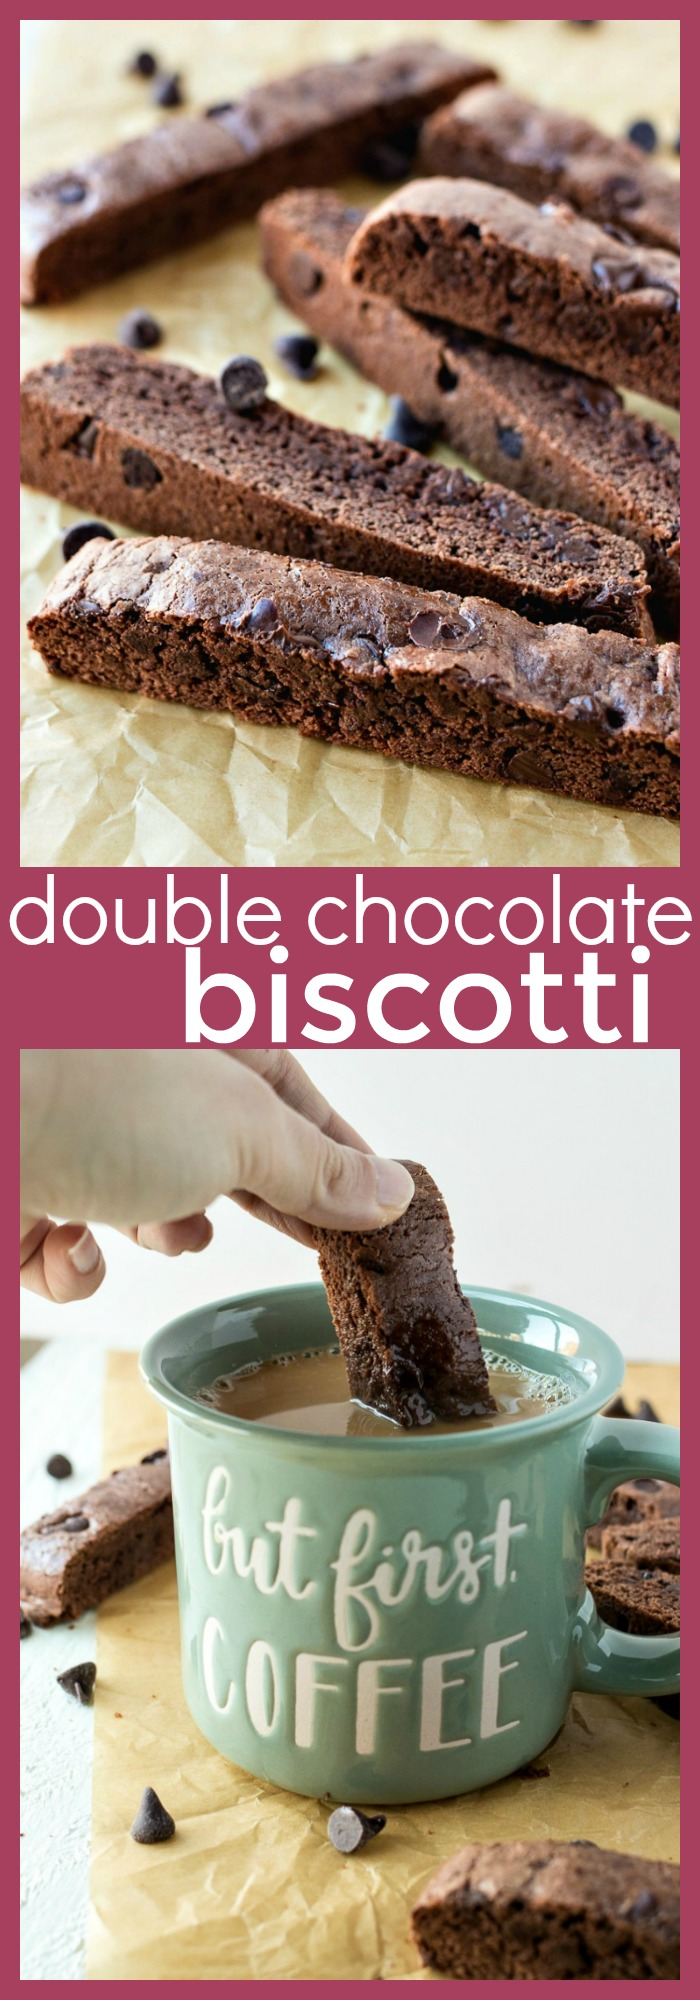 collage image of double chocolate biscotti with descriptive text